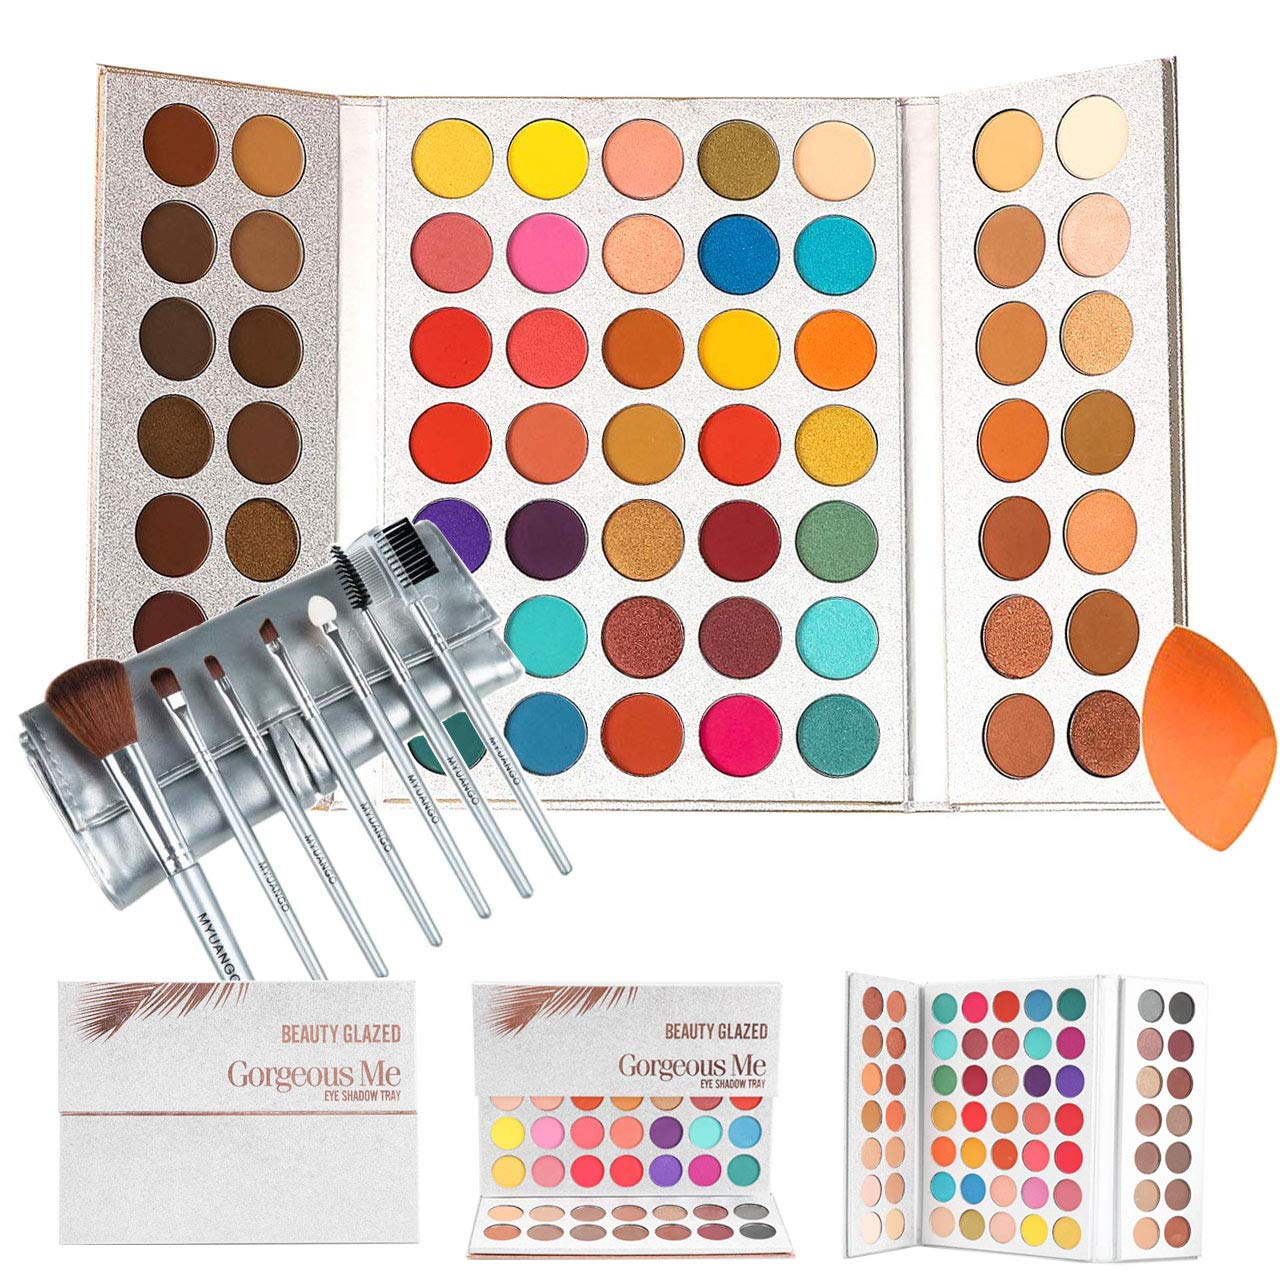 This is an image of an eyeshadow palette in 63 different shades, with brushes, and a blending sponge.